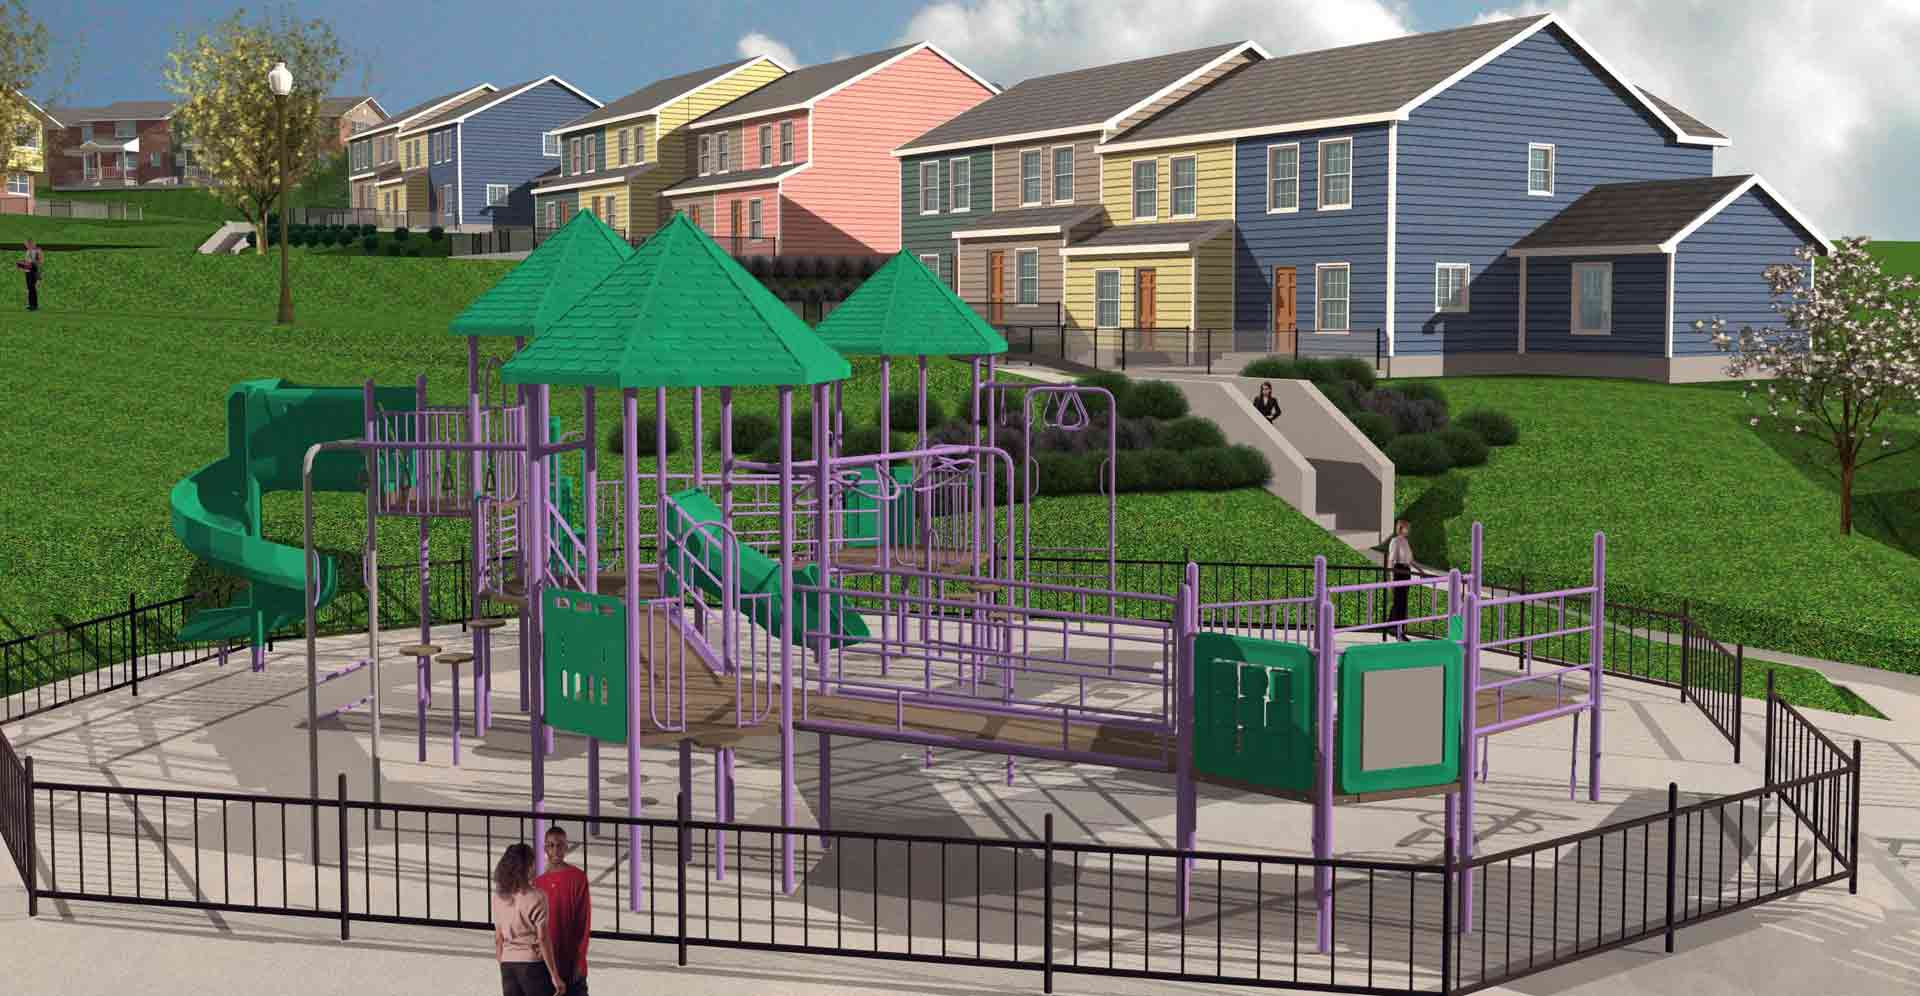 EASTVIEW-TERRACE-HOUSING-RENDERING-WITH-PLAYGROUND.jpg